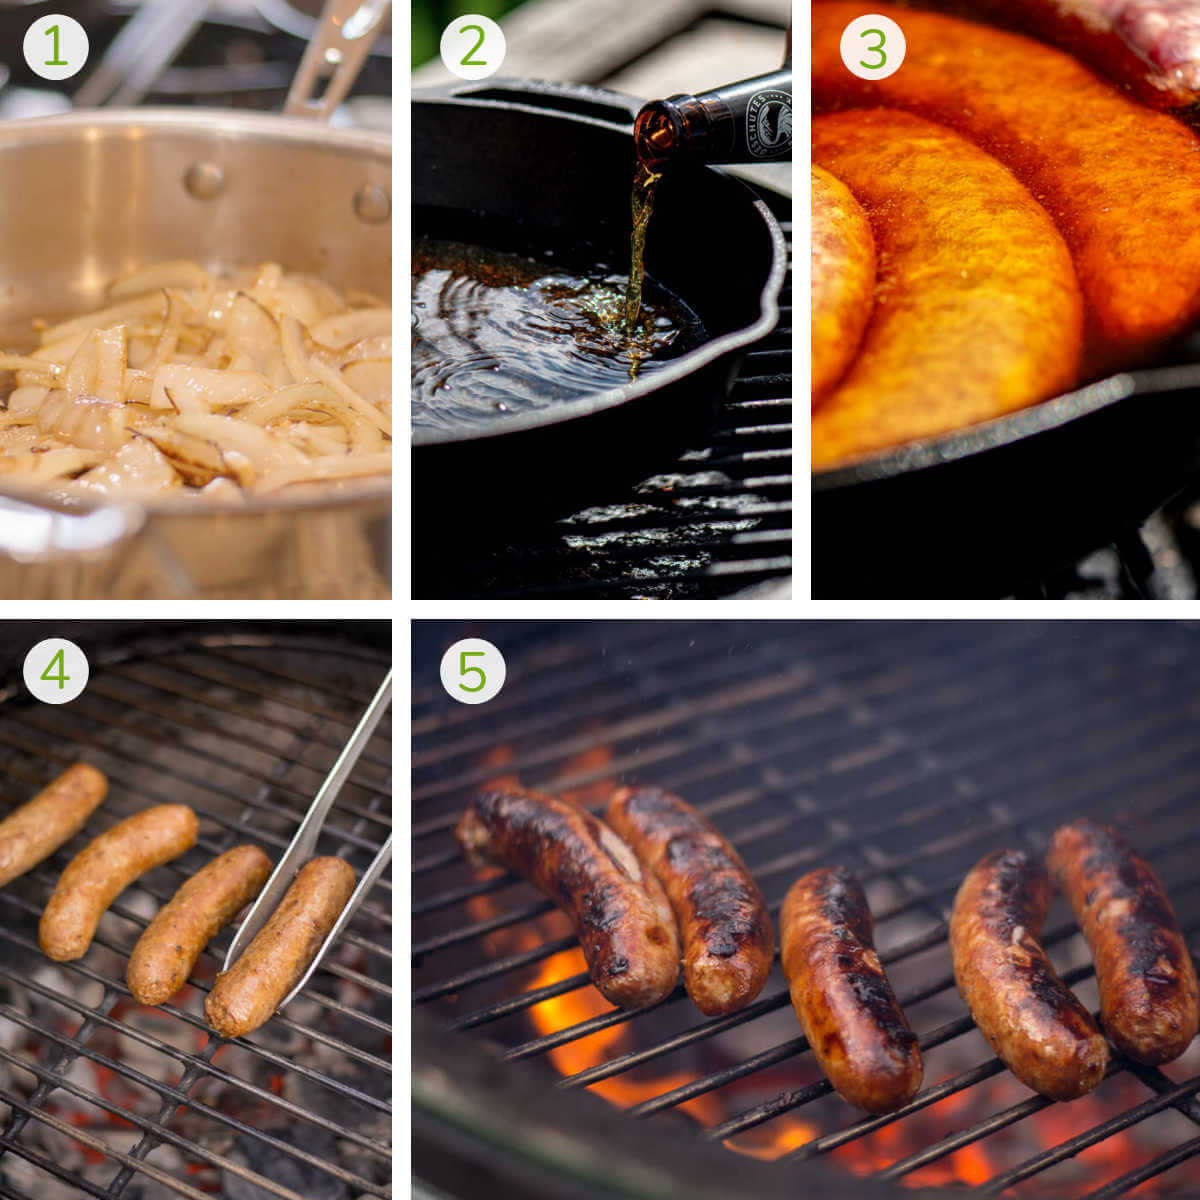 photos showing sautéing the onions, pouring the beer, boiling the brats and then grilling.